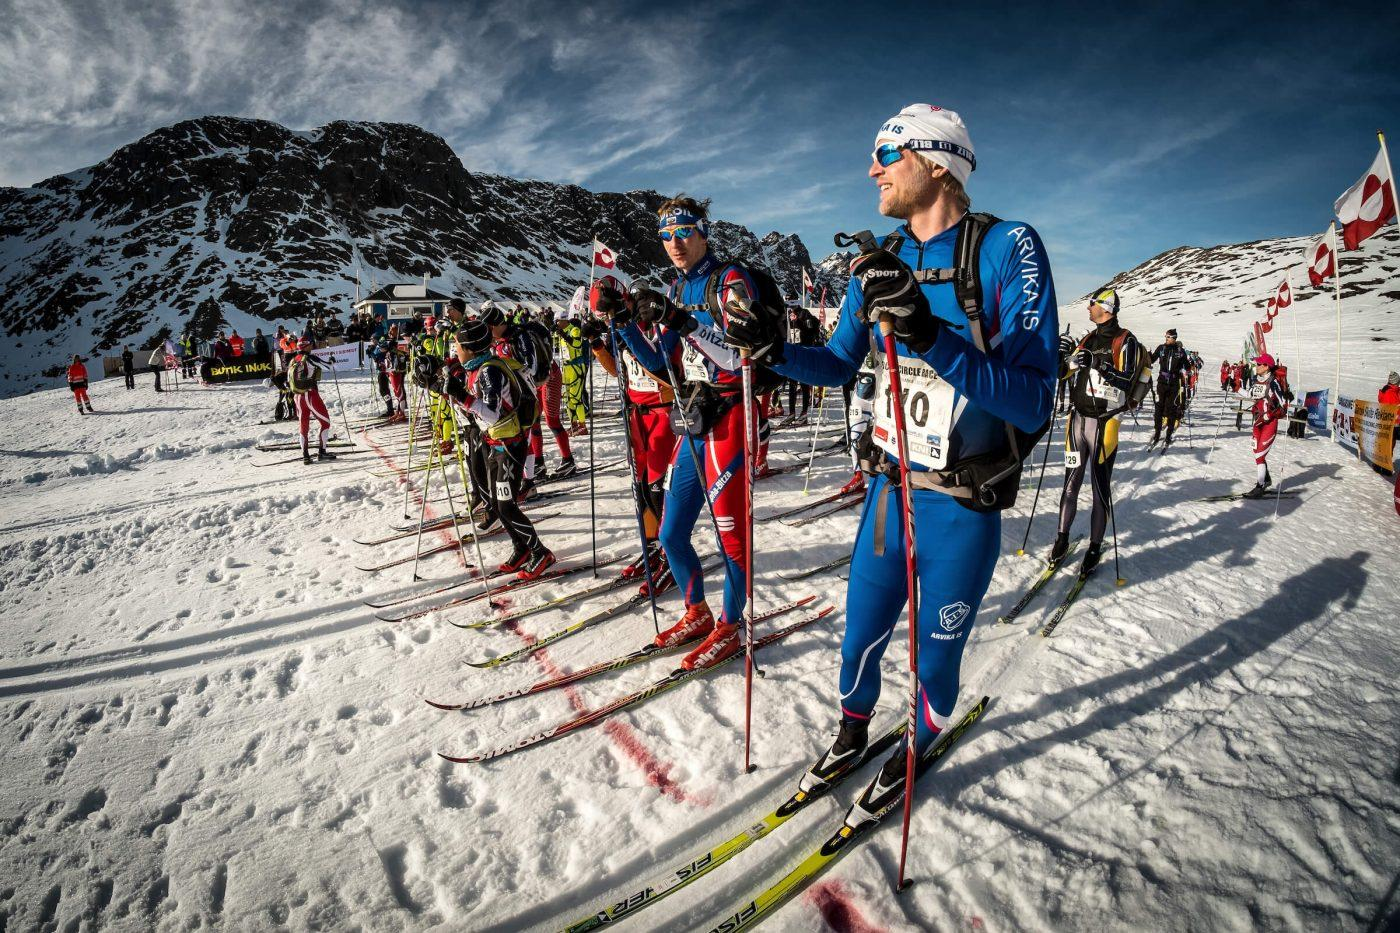 Skiers preparing for the start of day two of the Arctic Circle Race. Photo by Mas Pihl, Visit Greenland